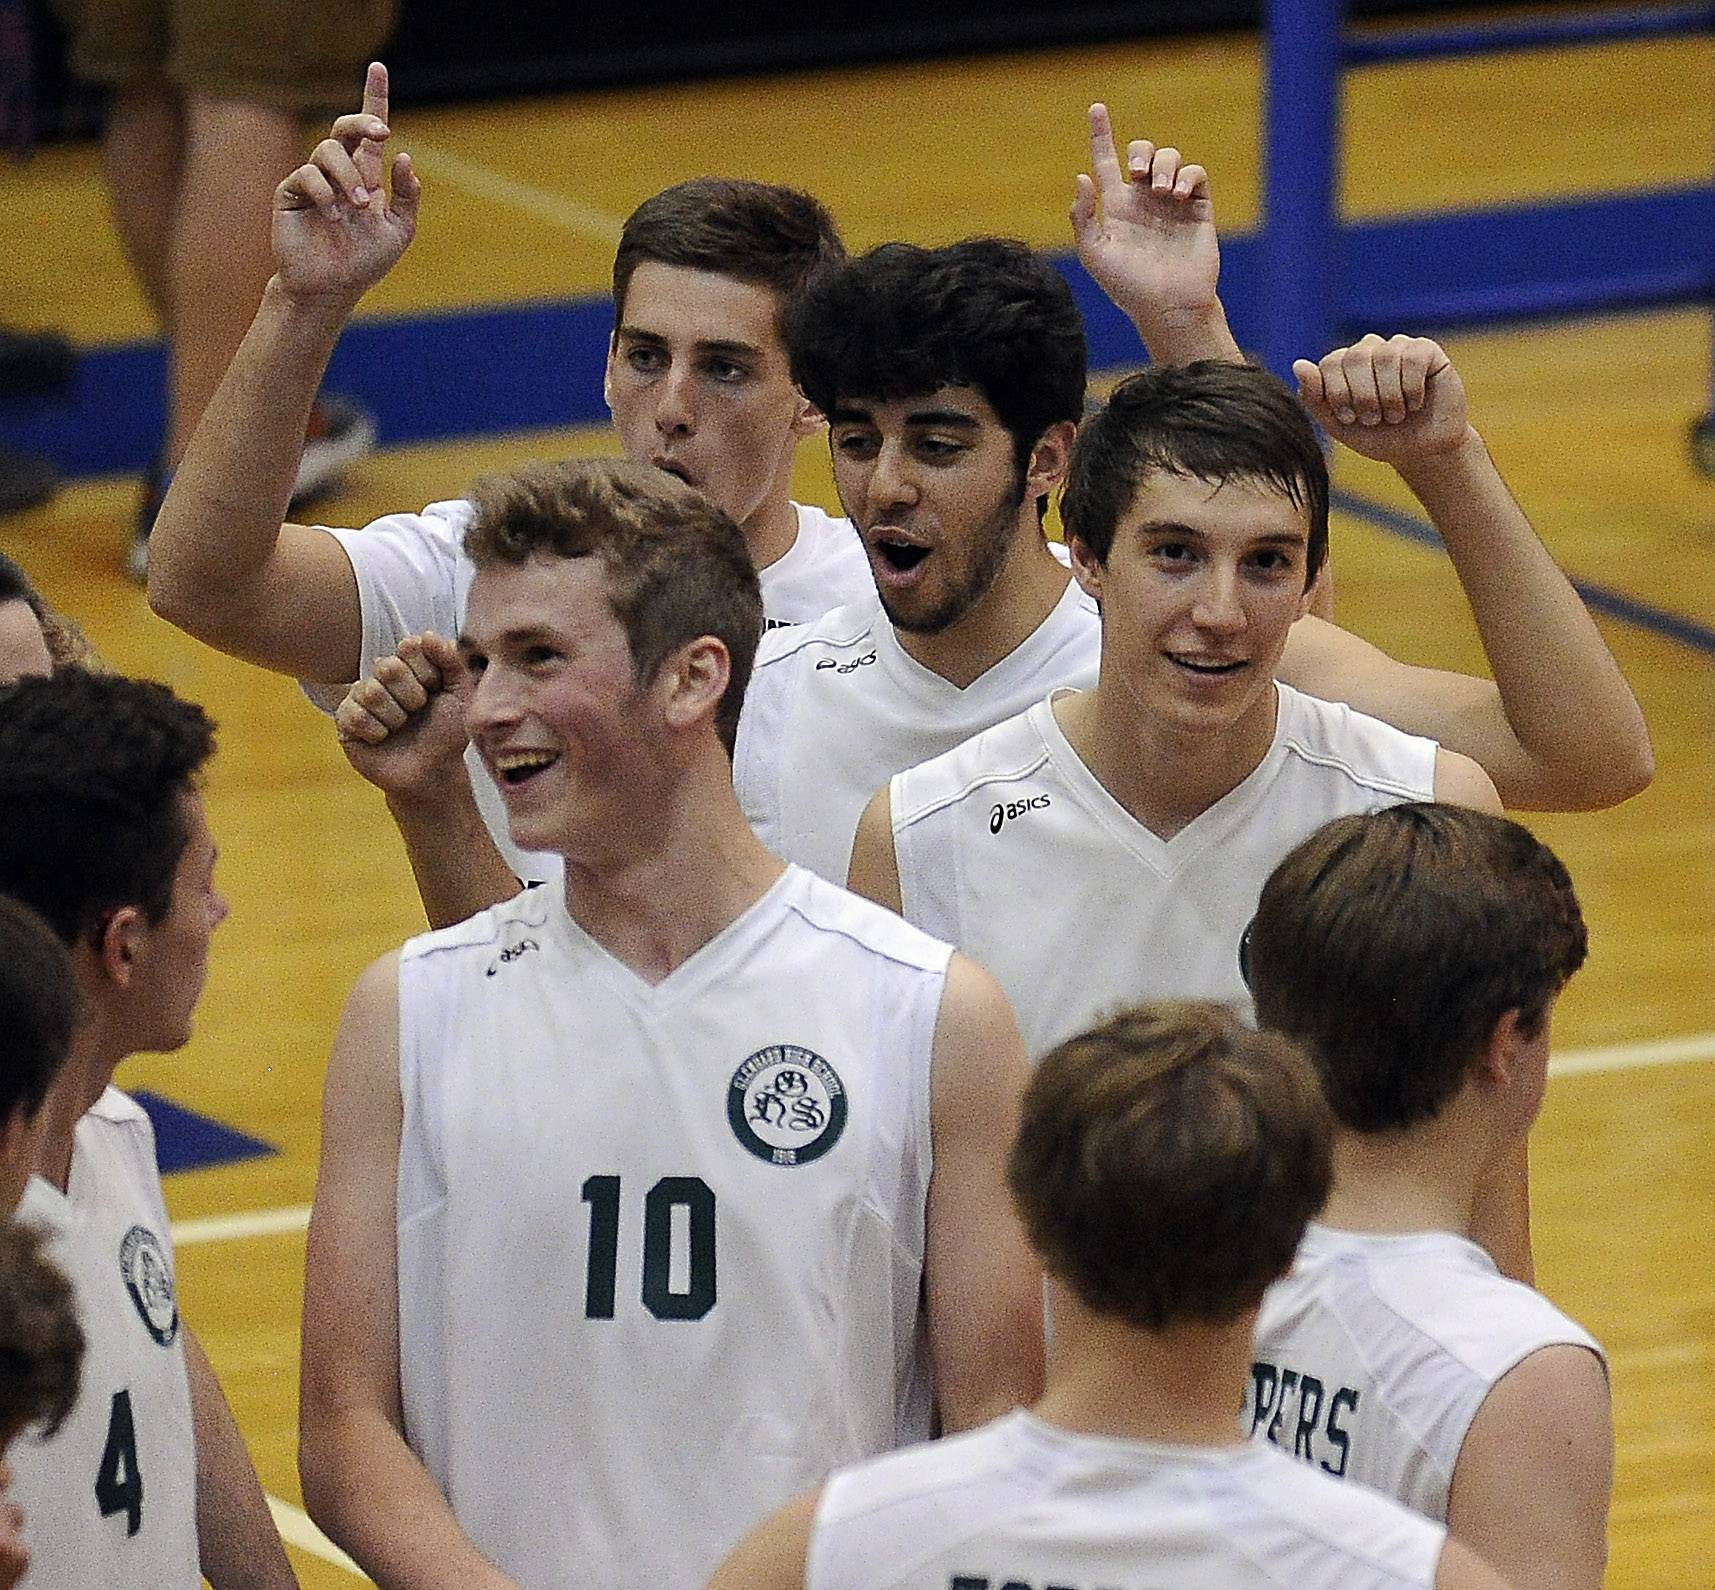 Glenbard West's Jackson Nagle (10) celebrates with his teammates against Morton in game two of the boys volleyball state quarterfinals at Hoffman Estates High School.